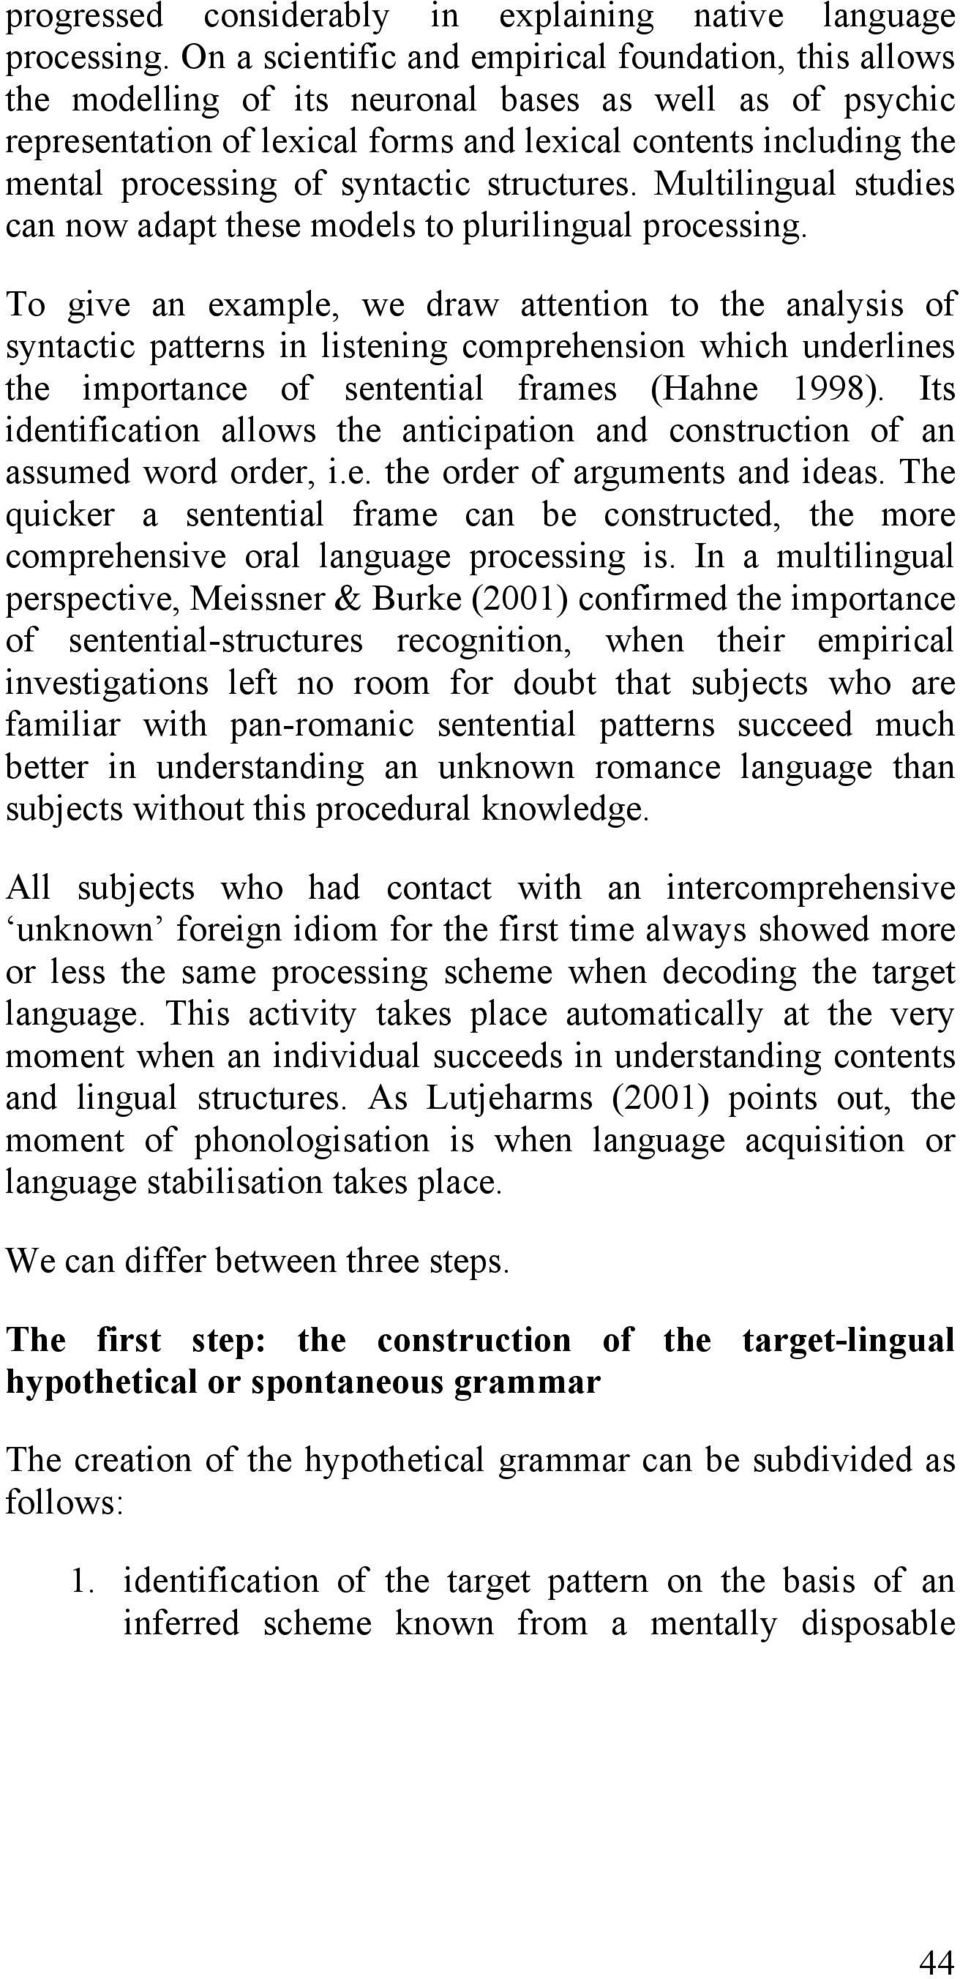 syntactic structures. Multilingual studies can now adapt these models to plurilingual processing.